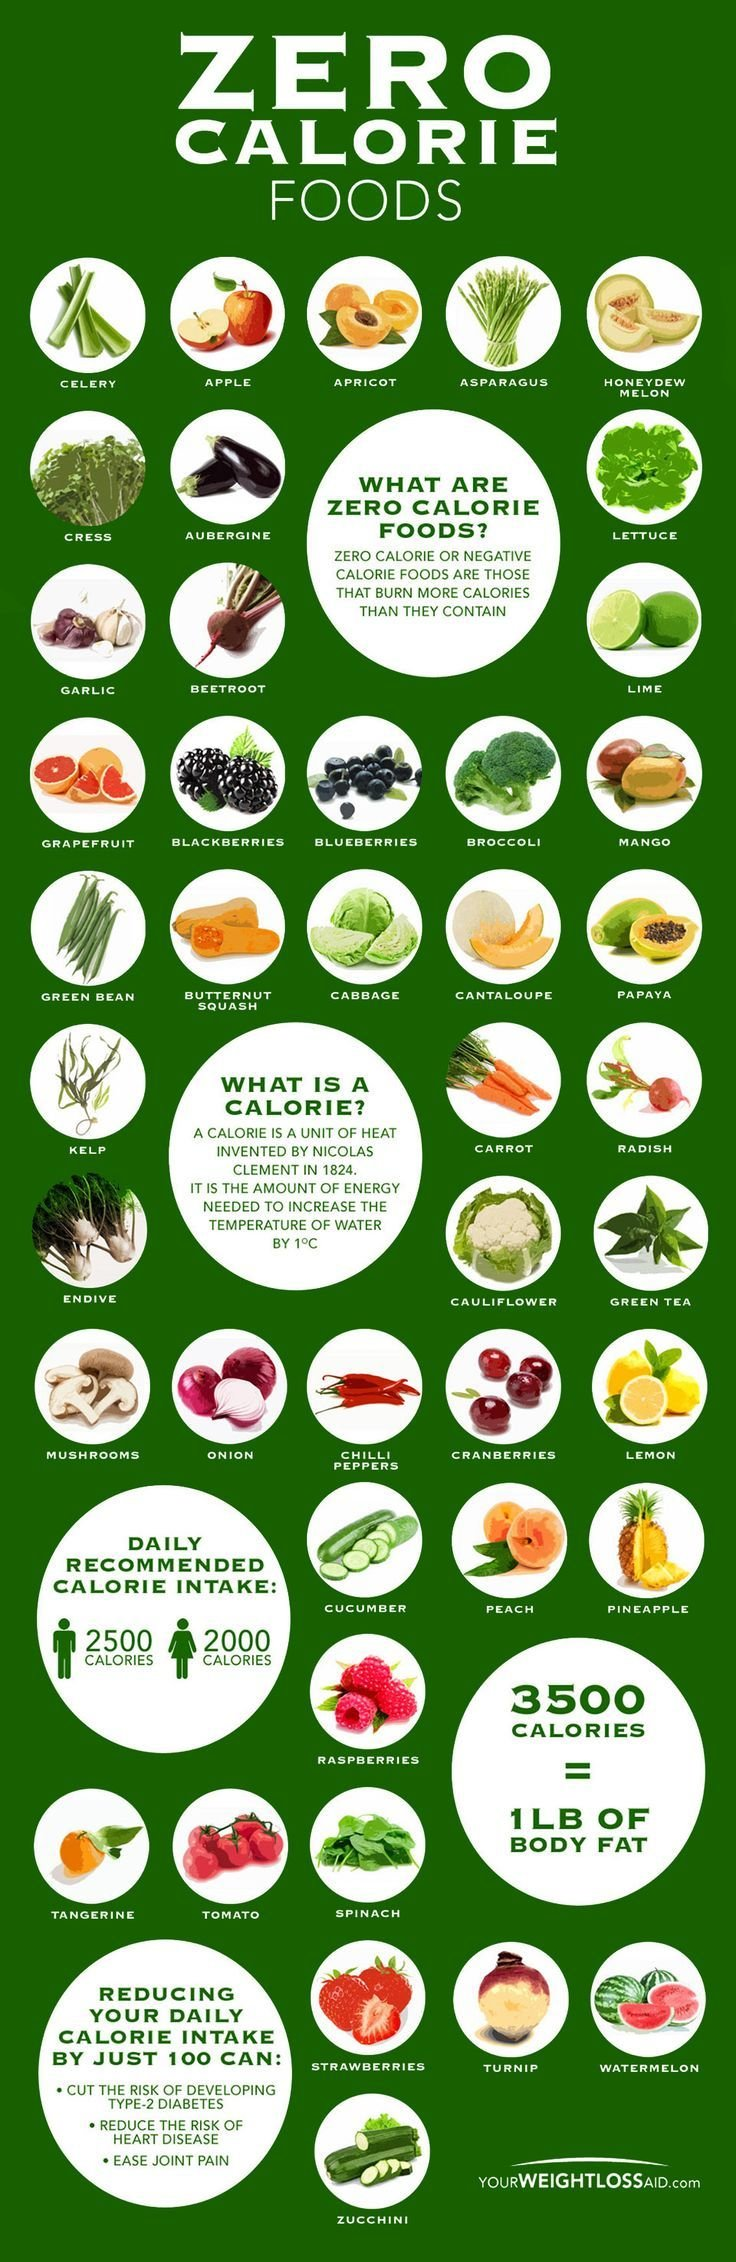 Zero calories food #diet #Infographic